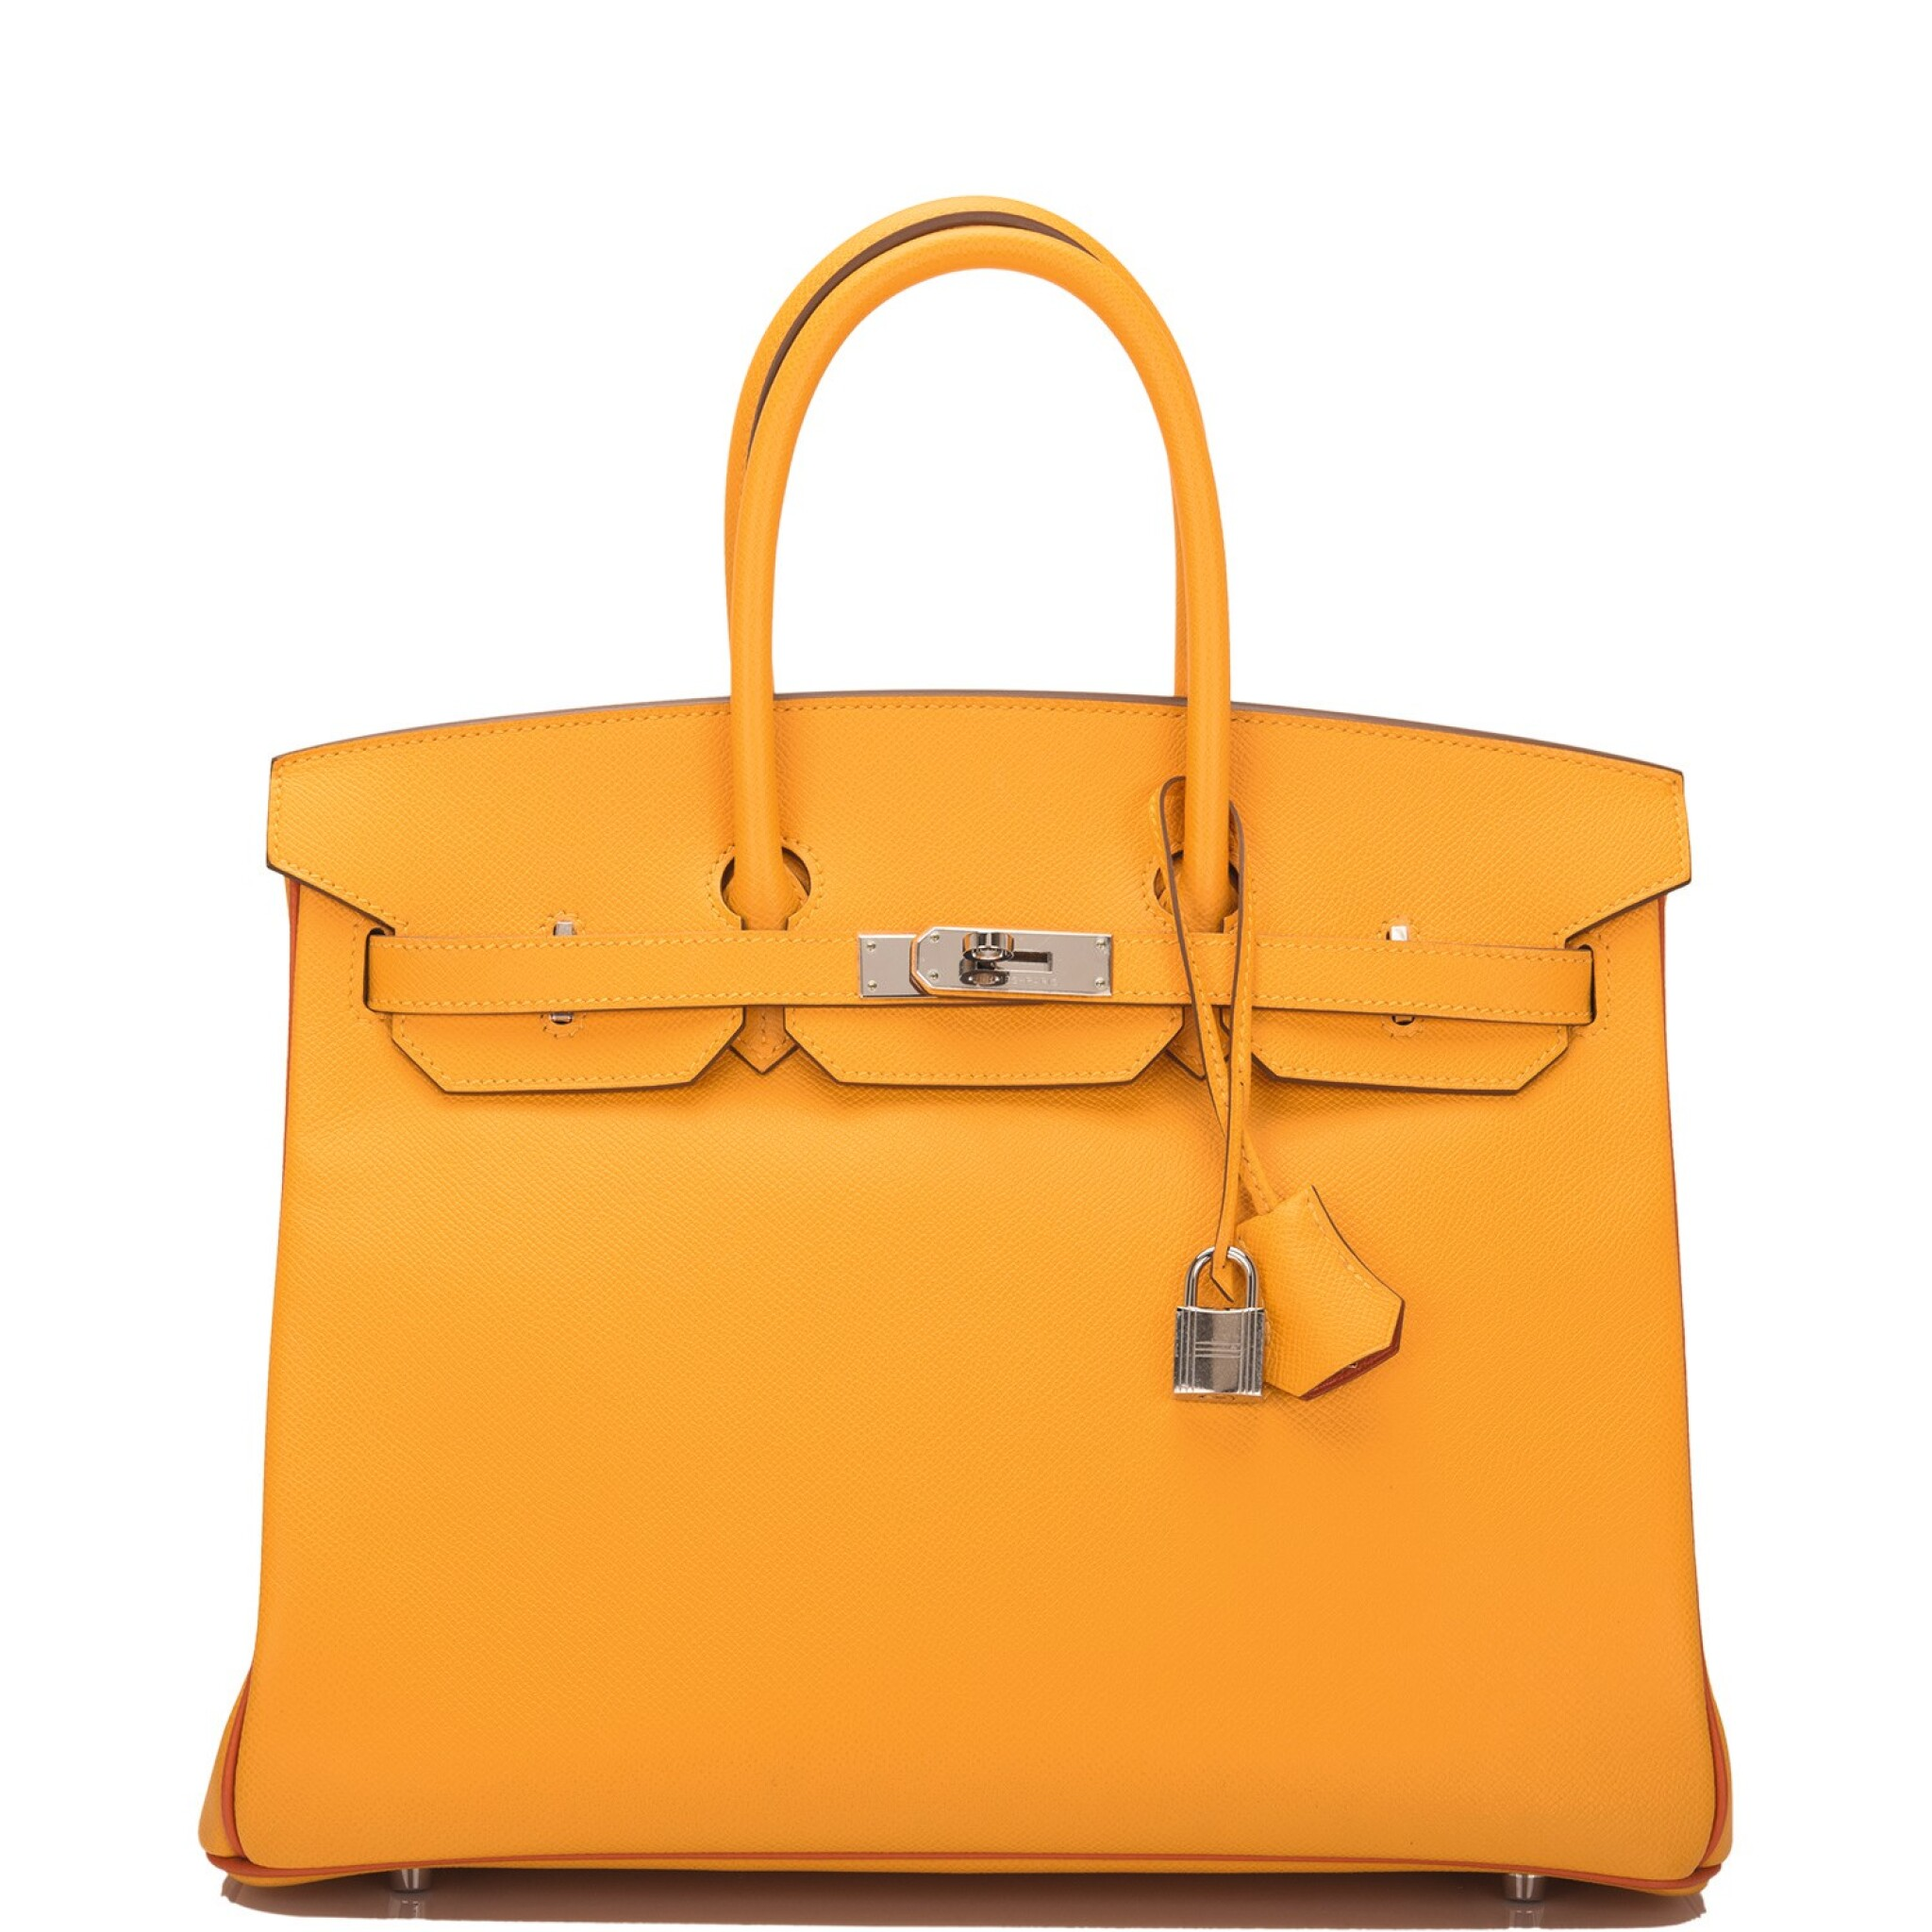 View full screen - View 1 of Lot 15. Hermès Horseshoe Stamped (HSS) Bi-color Jaune D'Or and Sanguine Birkin 35cm of Epsom Leather with Palladium Hardware.